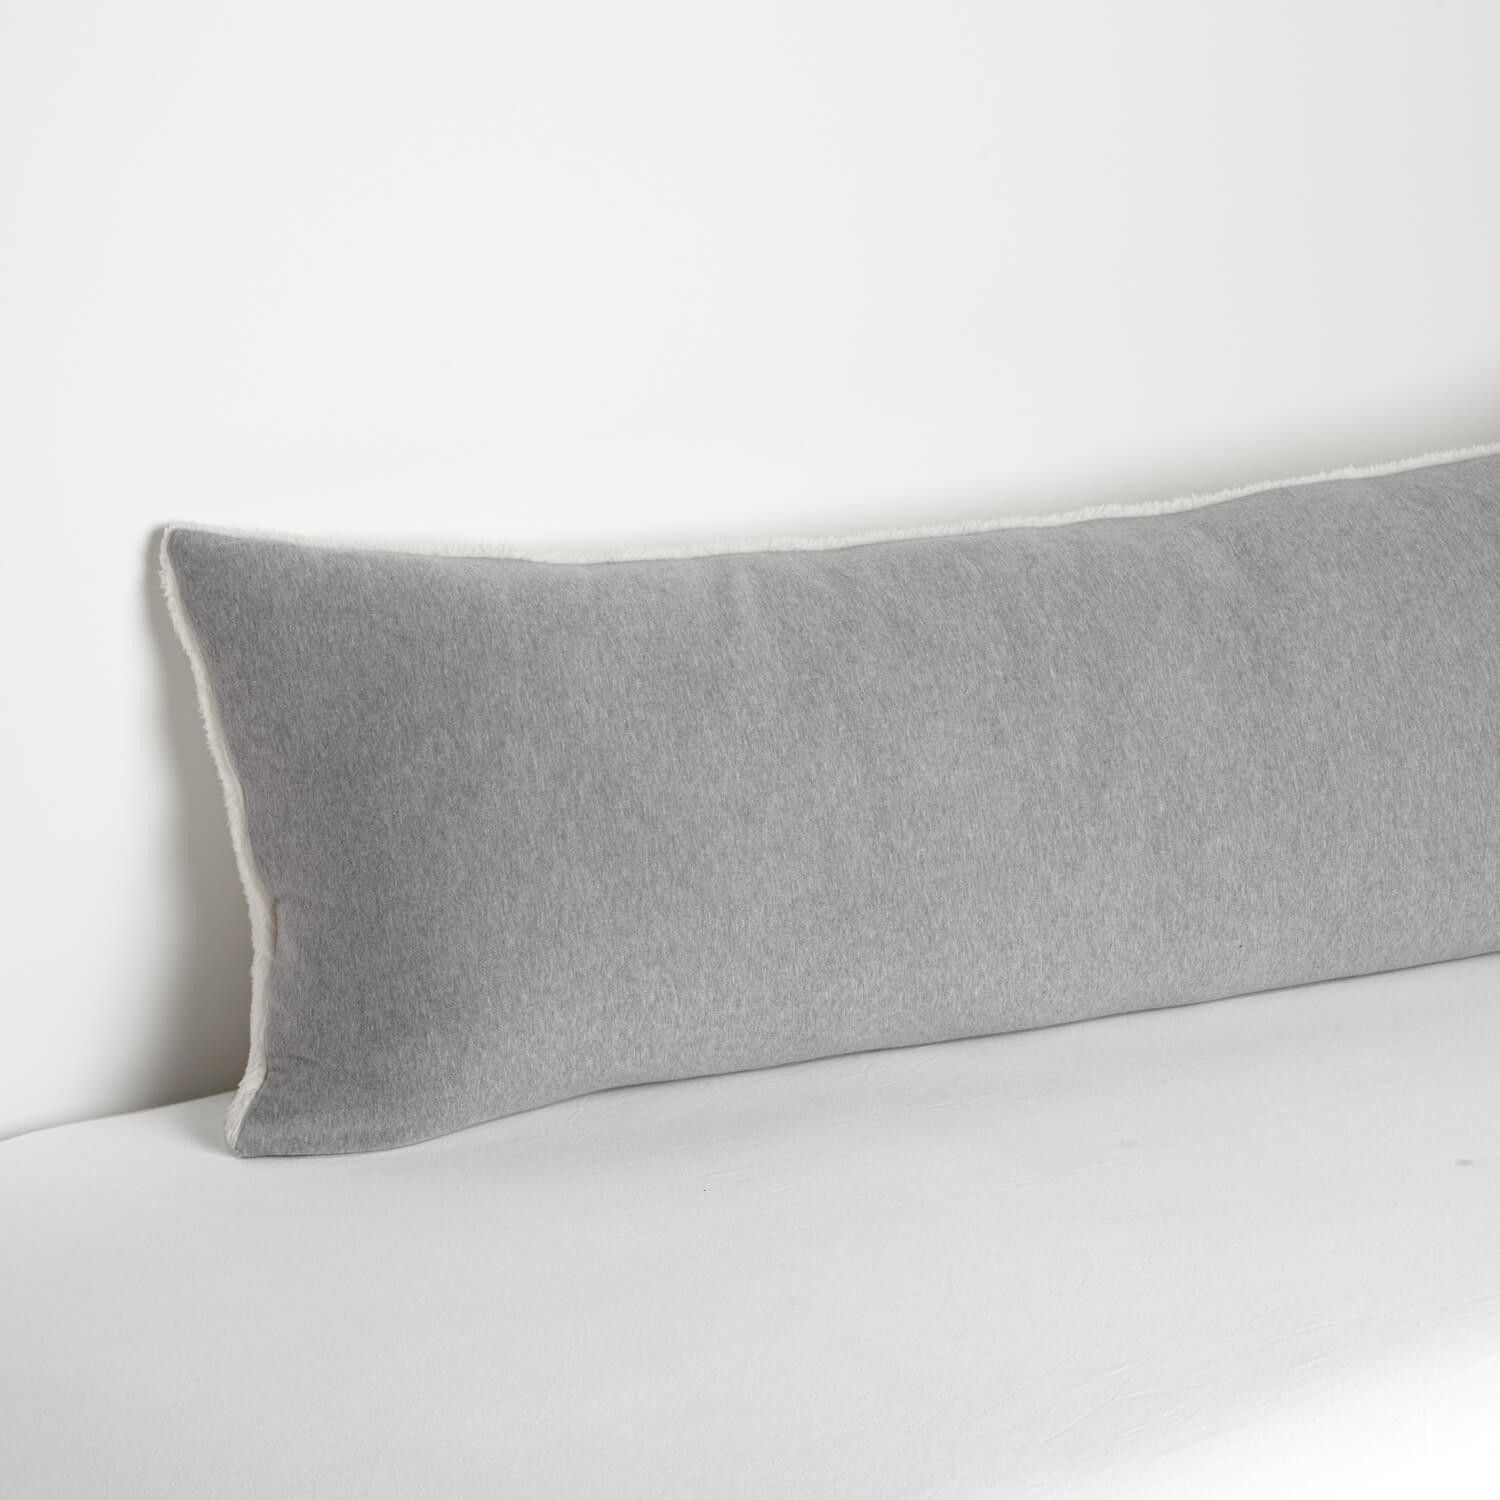 Sweatshirt/Sherpa Body Pillow Cover | Body pillow covers and Products